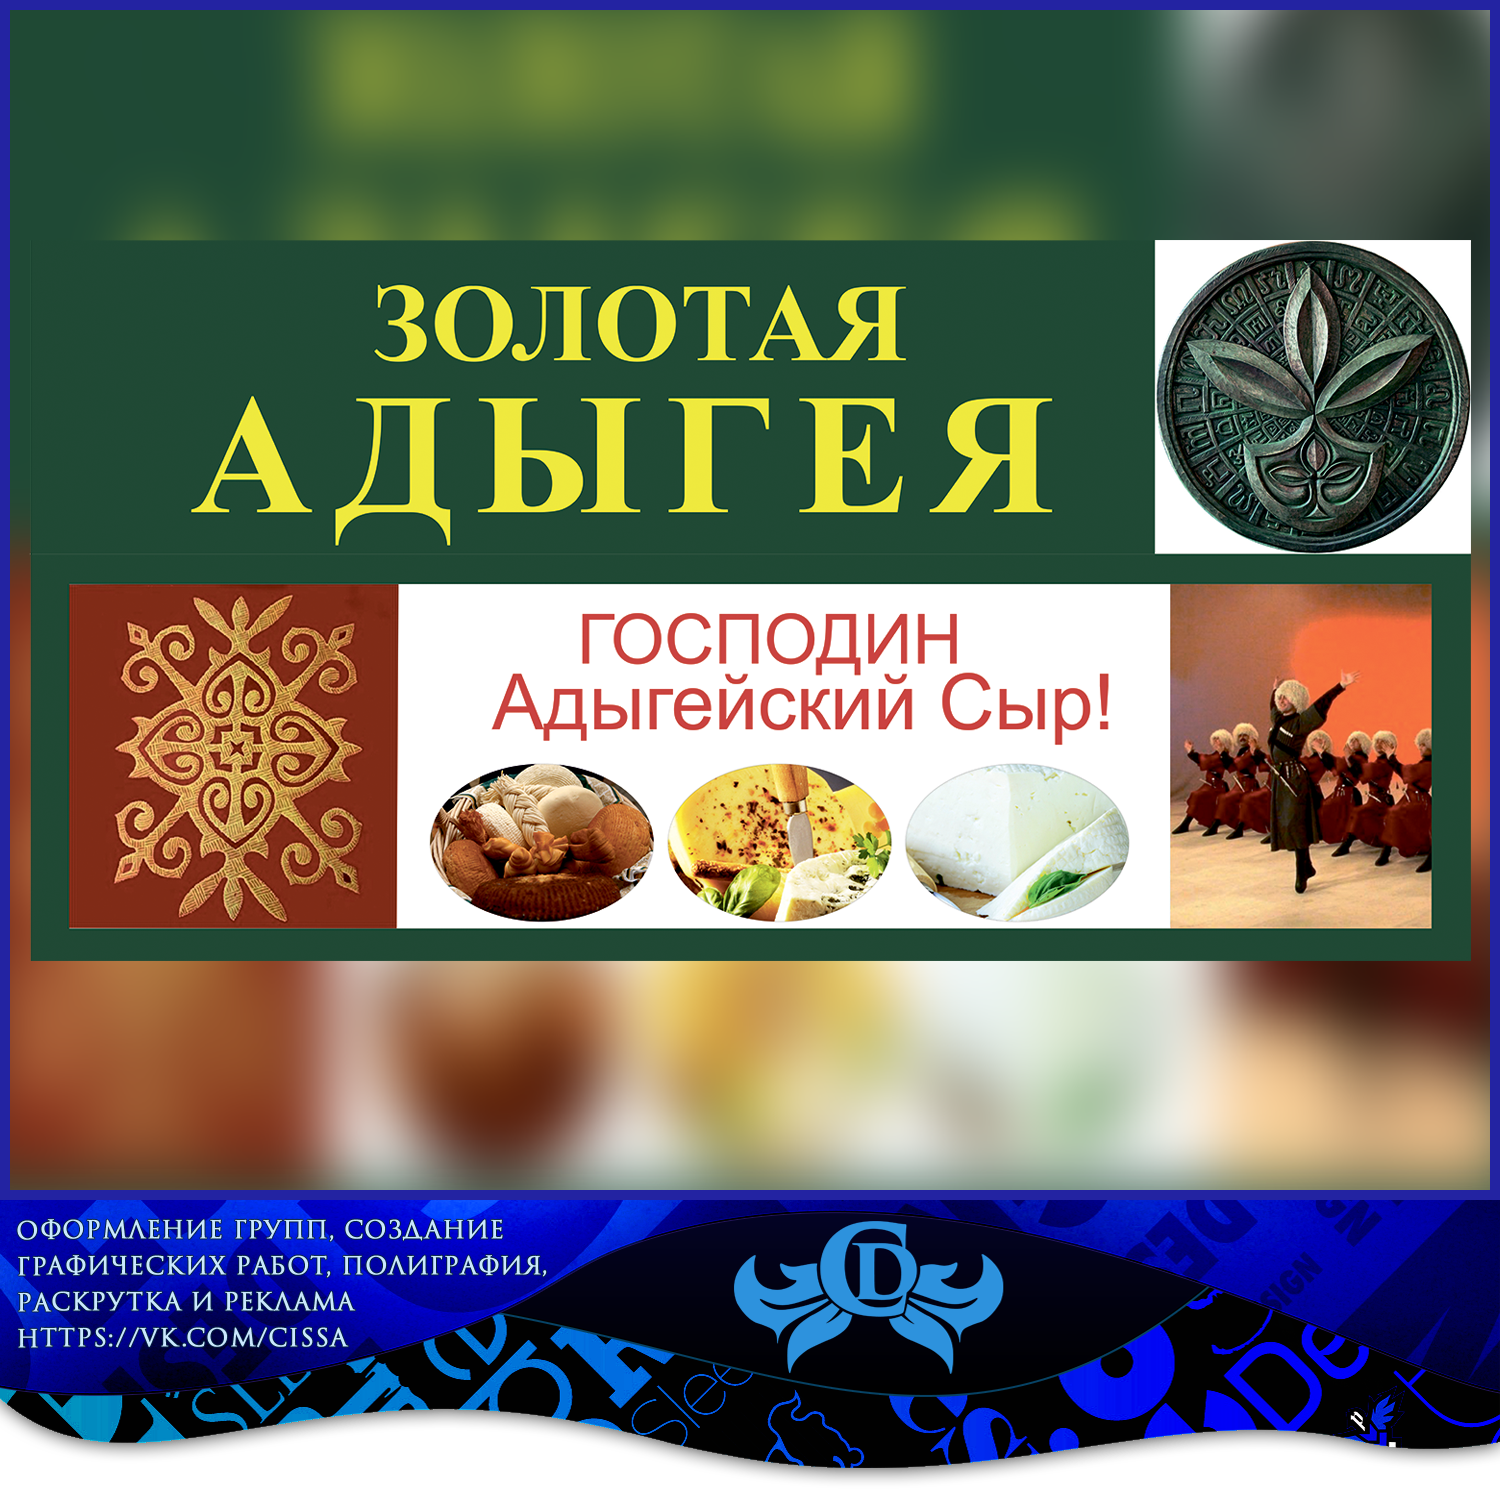 http://images.vfl.ru/ii/1505885012/600f21a2/18666123.png